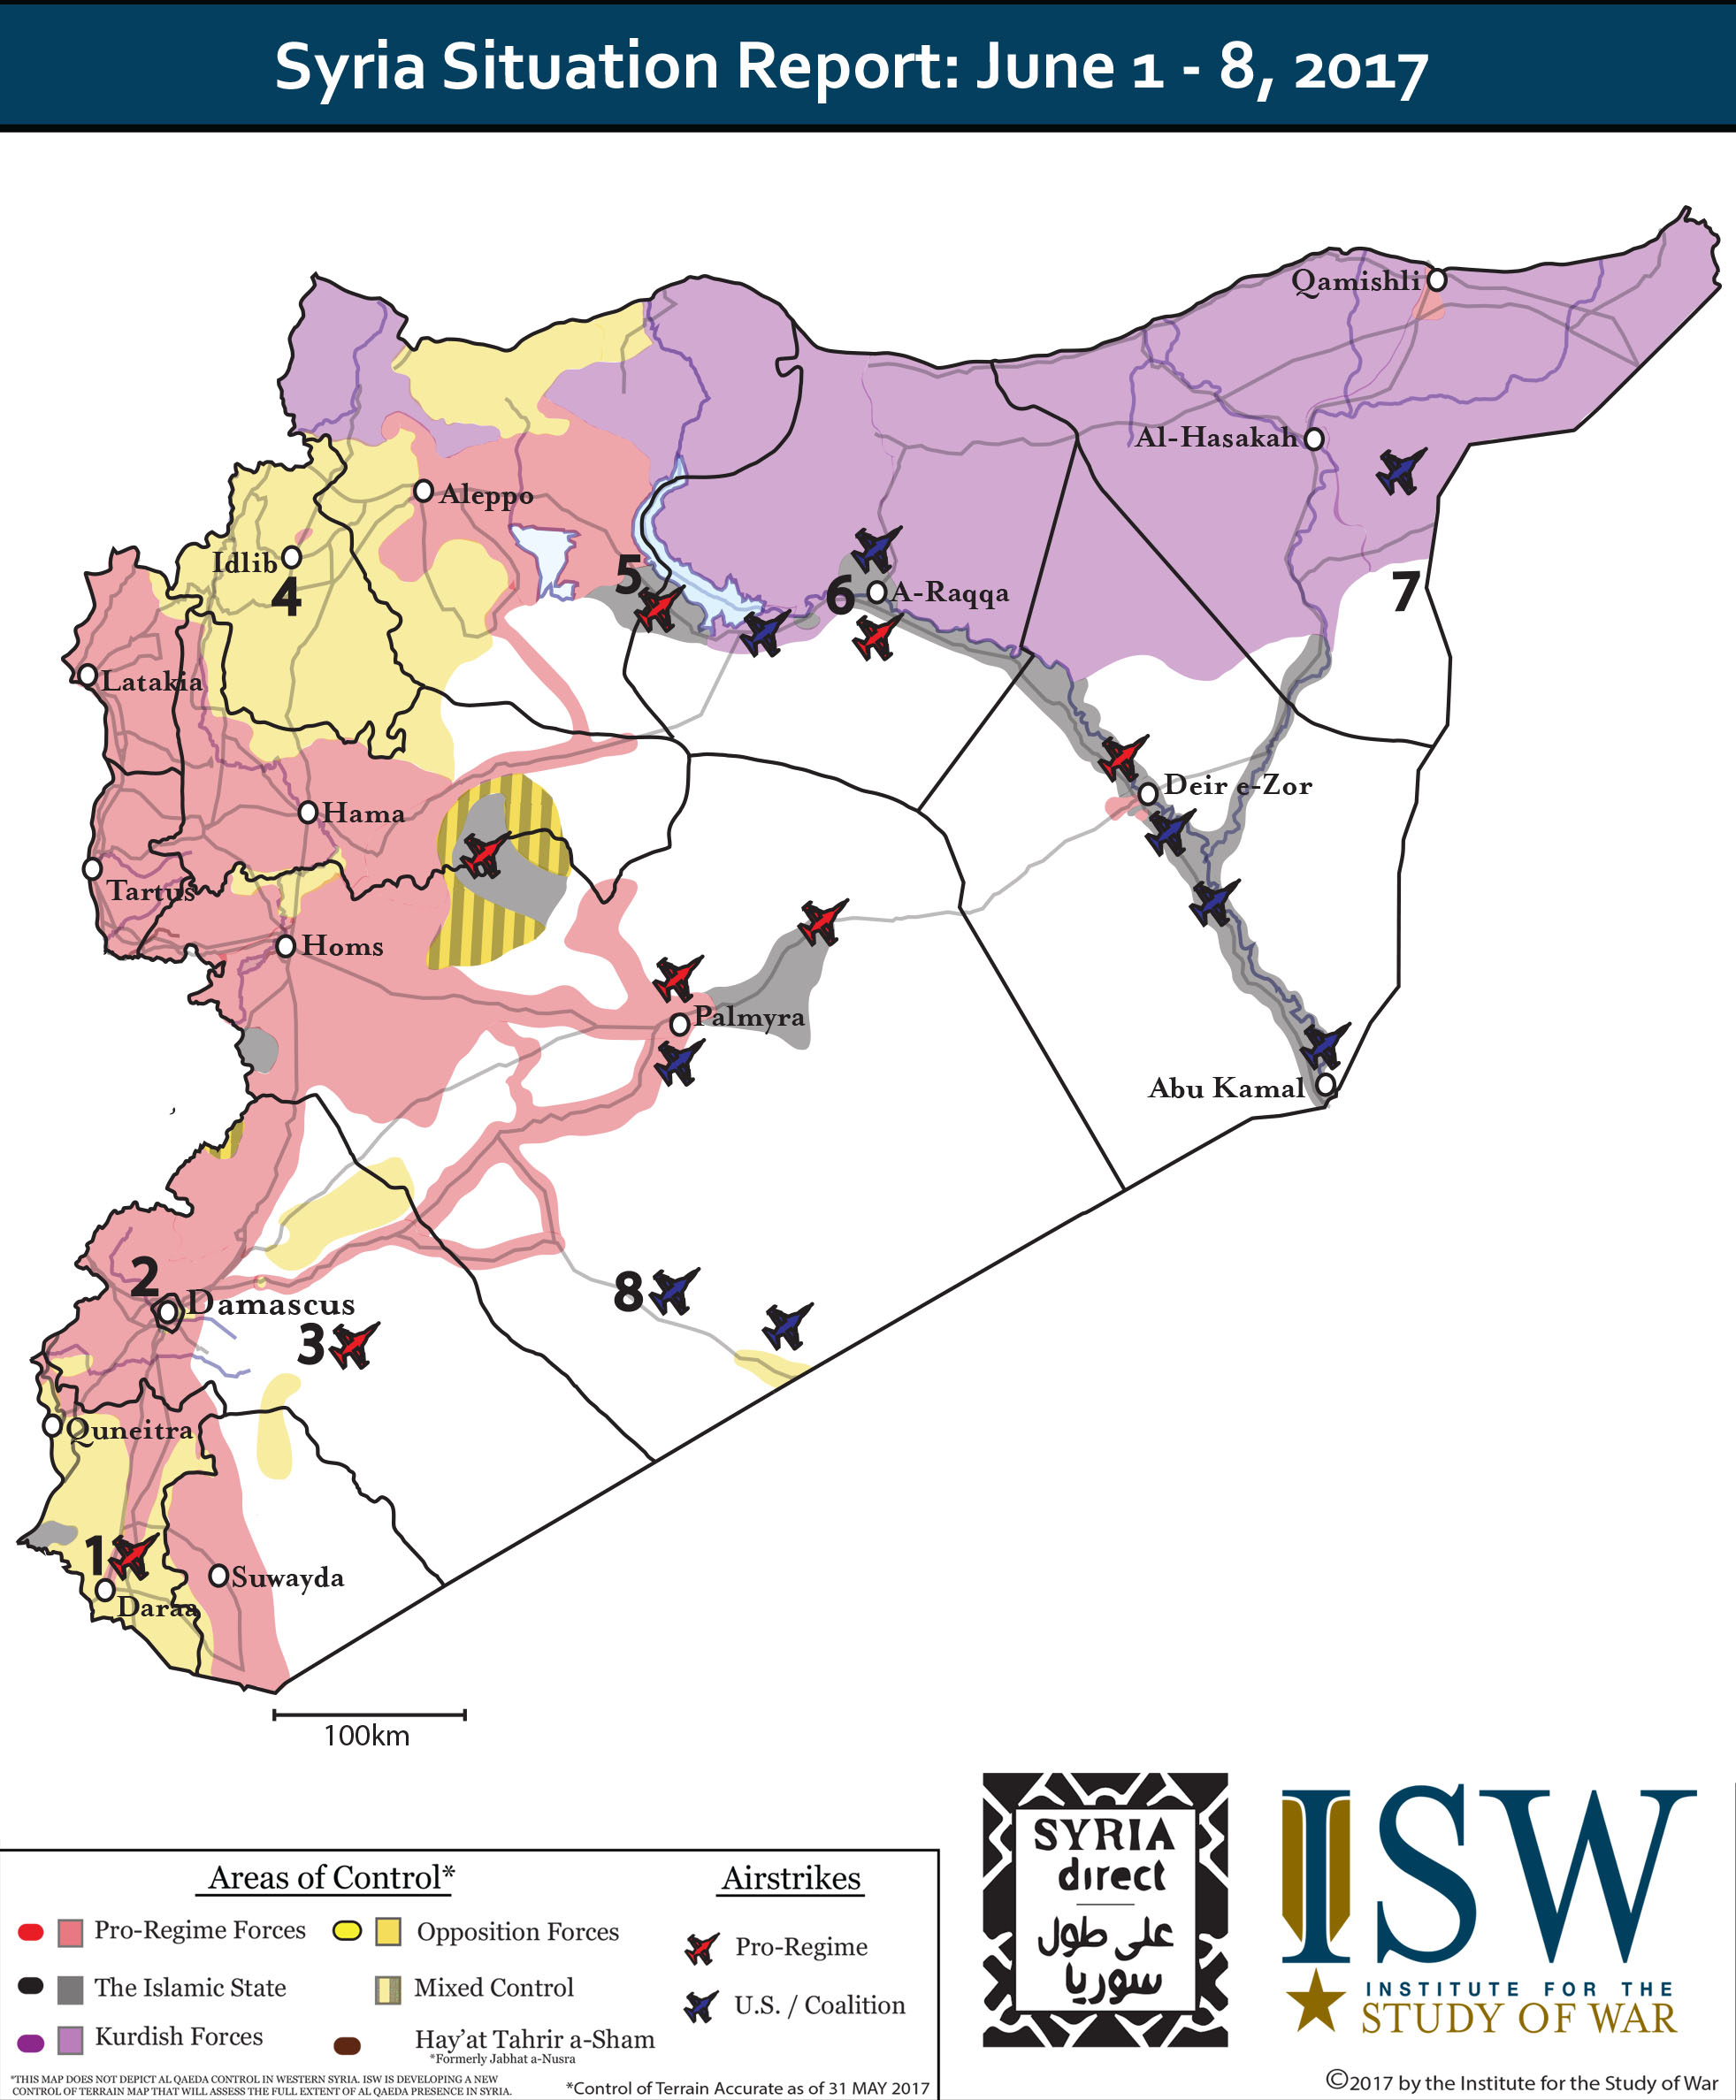 Syria's war  Who controls what      Al Jazeera as well New battle map of Syrian War  October 2018 additionally Conflict Mapping and the Syrian Civil War – Conflict ysis in addition More Maps of the Syrian Civil War 3 as well Syria and Rebels Battle for Aleppo as Cease Fire Collapses   The New besides Home   The Syrian Conflict   LibGuides at University of Illinois at moreover Template Syrian Civil War detailed map   Wikipedia also Aleppo  Who controls what   Syria   Al Jazeera as well Mapping Syria   geographical imaginations besides Syrian civil war map  Who controls what    News24 further The Future Parion of Syria – An Overview in addition Syria  Mapping the conflict   BBC News likewise The Future Parion of Syria – An Overview further Syrian government declares capital fully under its control besides Map  Areas under IS group control in Iraq and Syria as well Mapping World War In Syria   Iraq   Zero Hedge. on syria control map